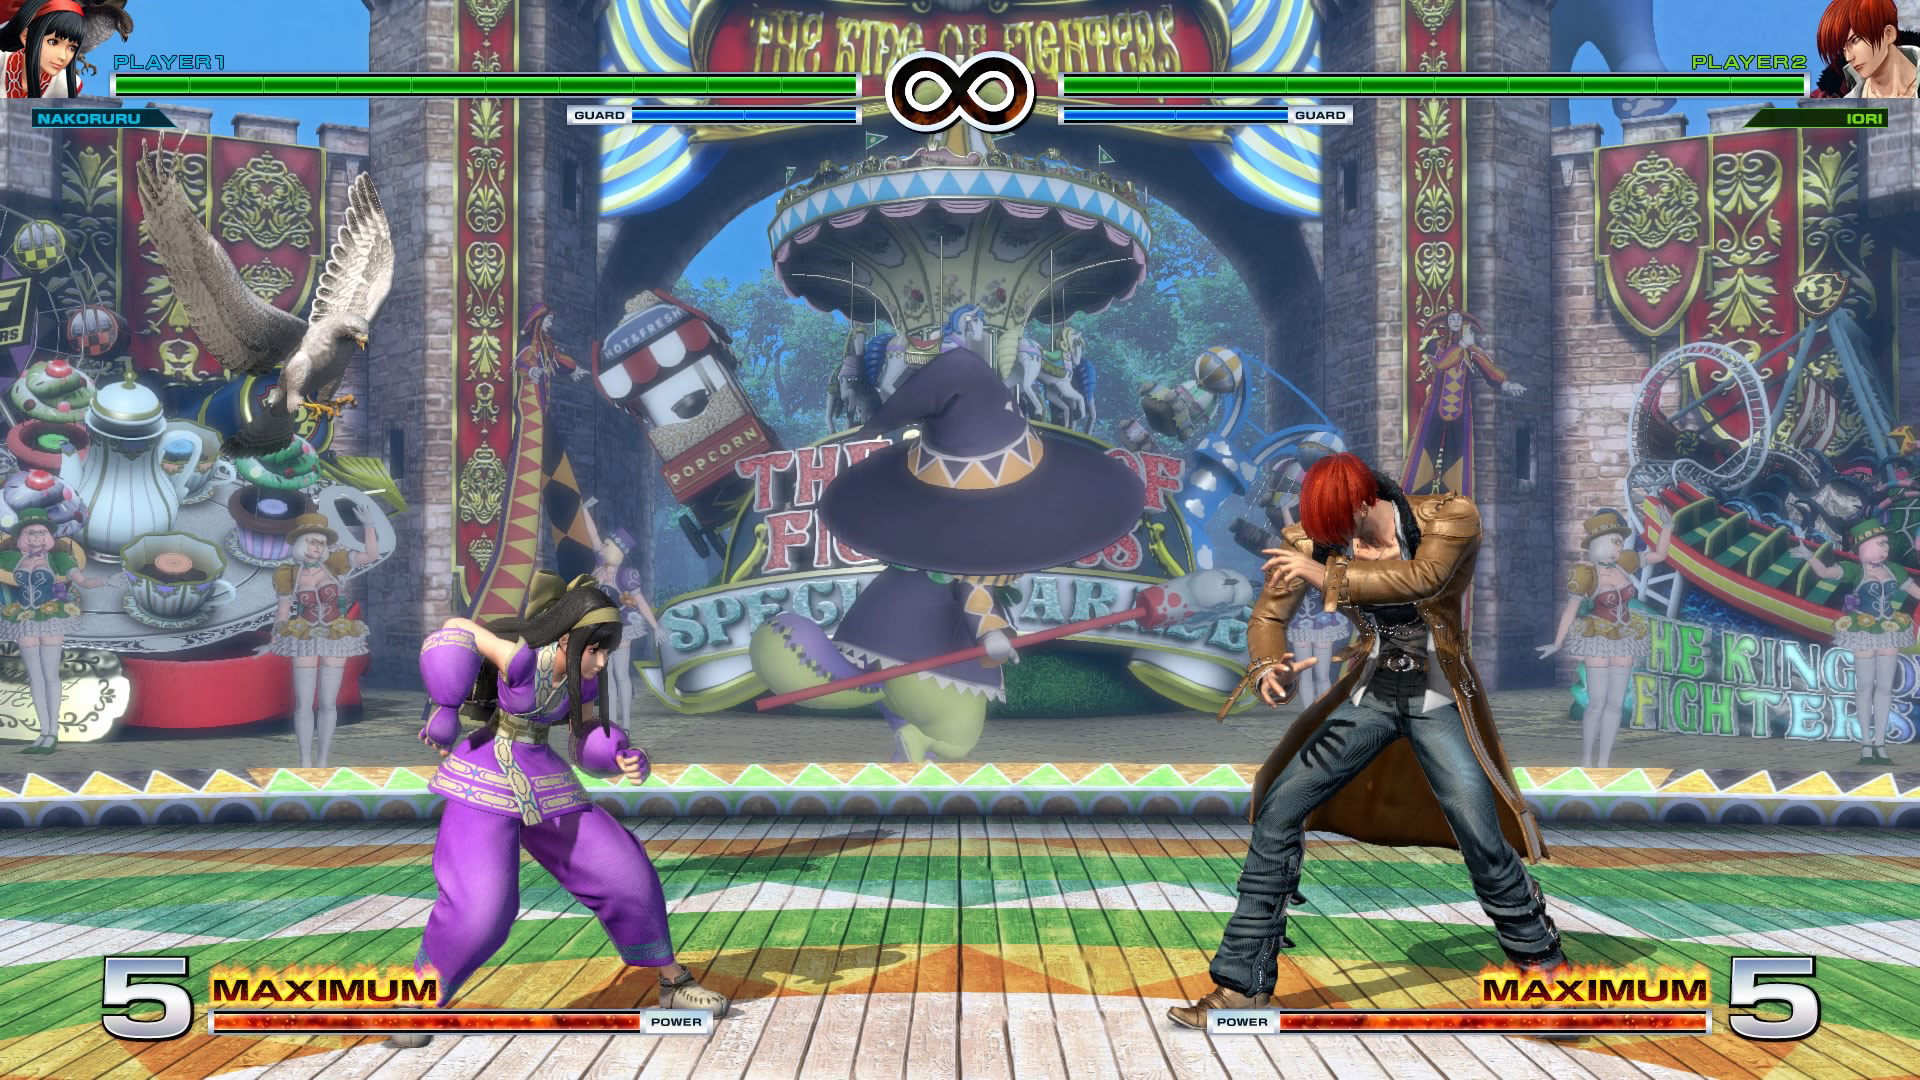 King of Fighters 14 1.10 graphics update 20 out of 60 image gallery